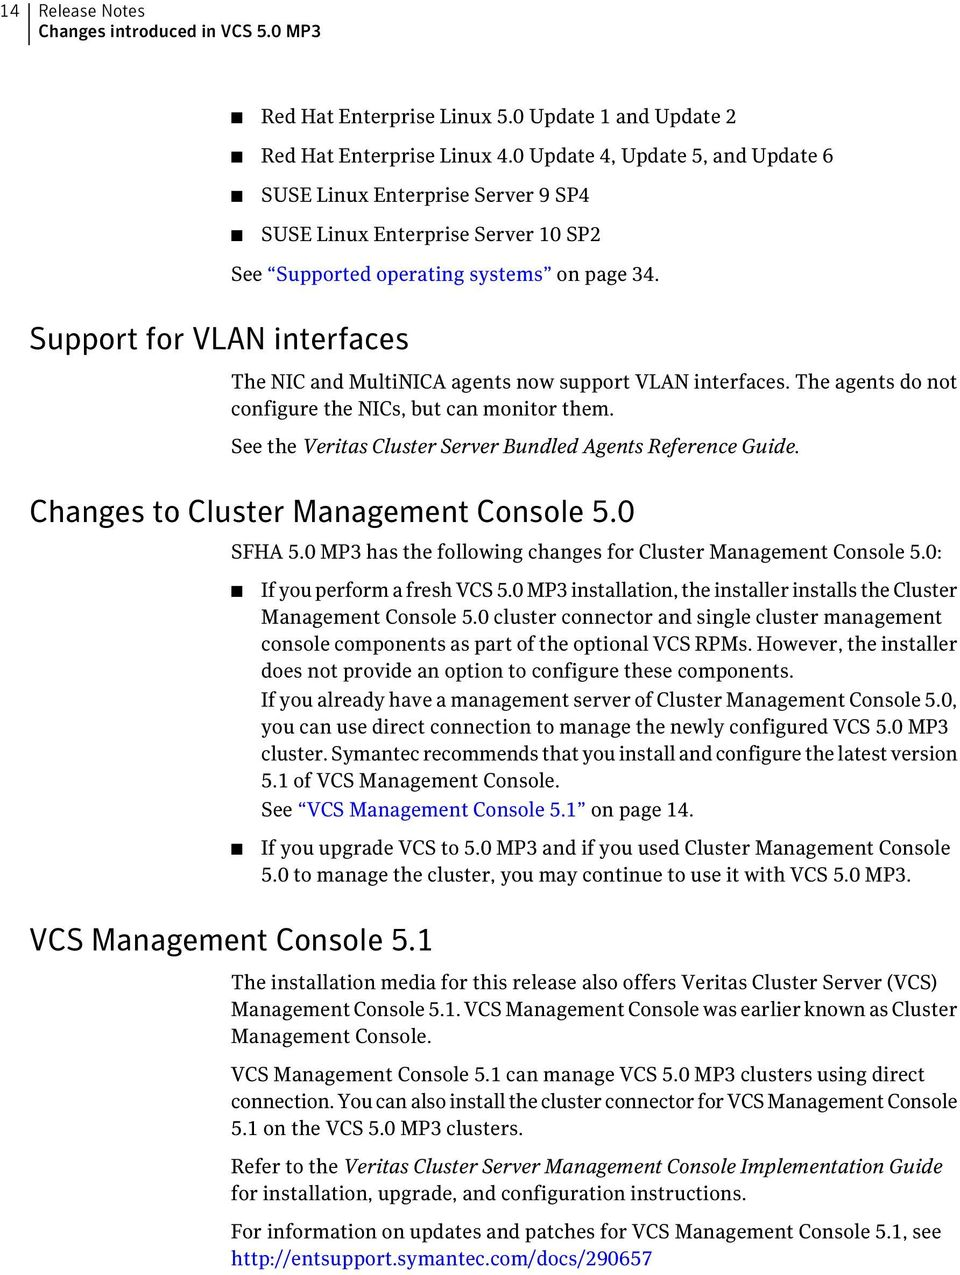 Support for VLAN interfaces The NIC and MultiNICA agents now support VLAN interfaces. The agents do not configure the NICs, but can monitor them.